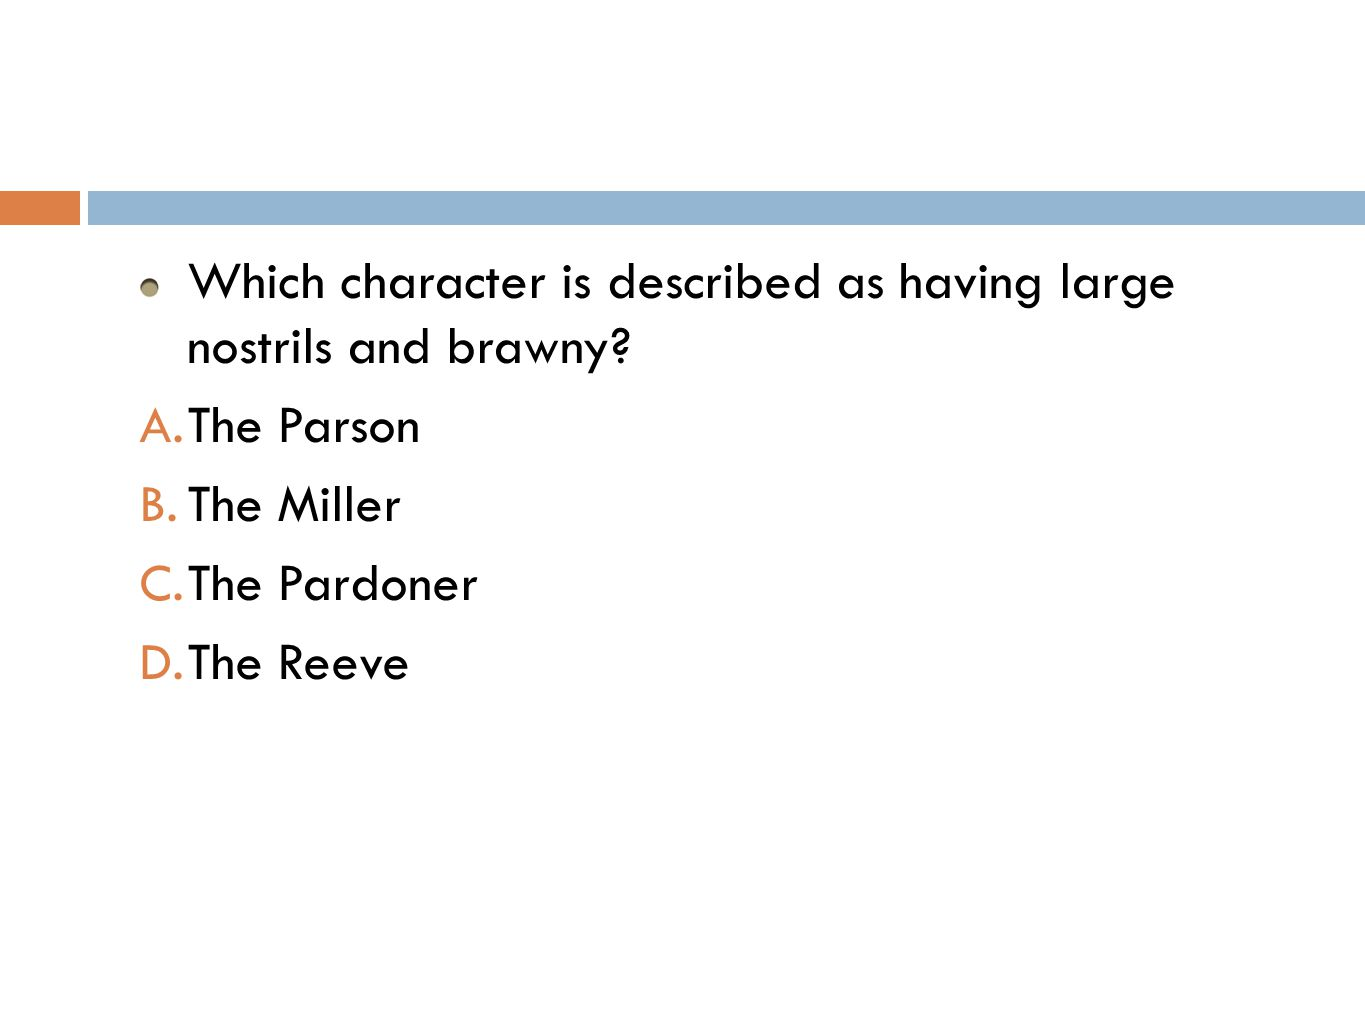 Which character is described as having large nostrils and brawny.